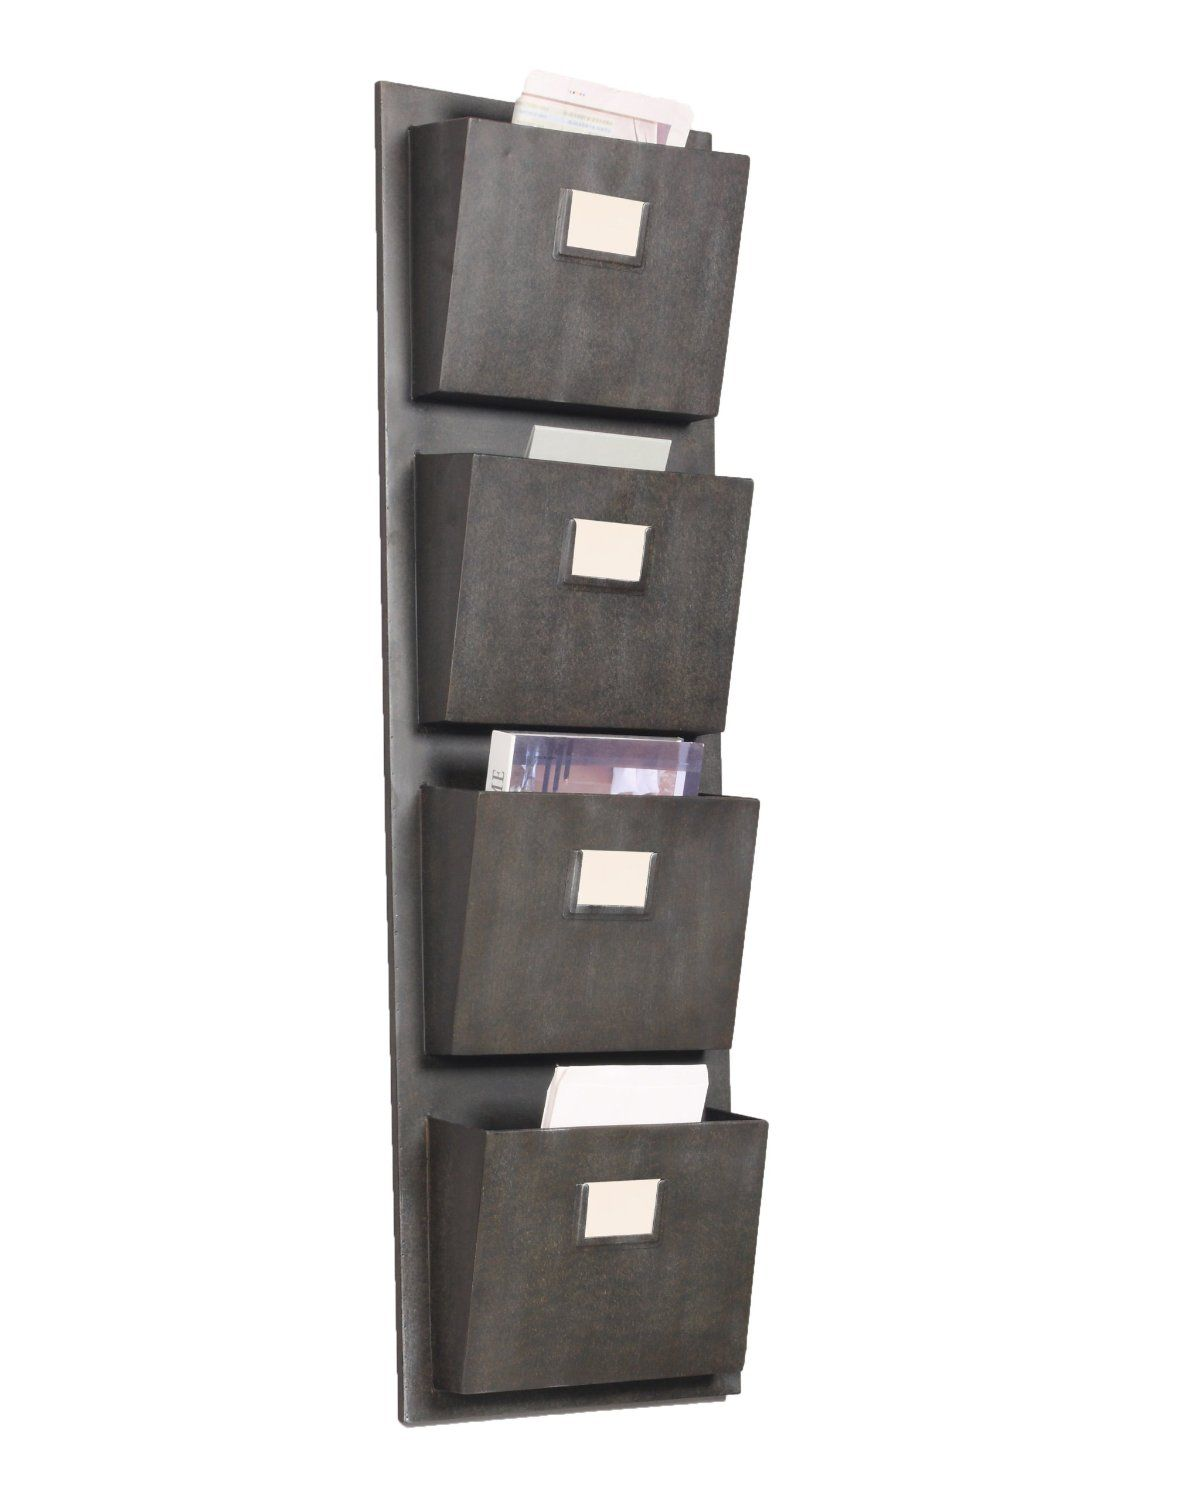 4 Slot Hanging Metal Mailbox